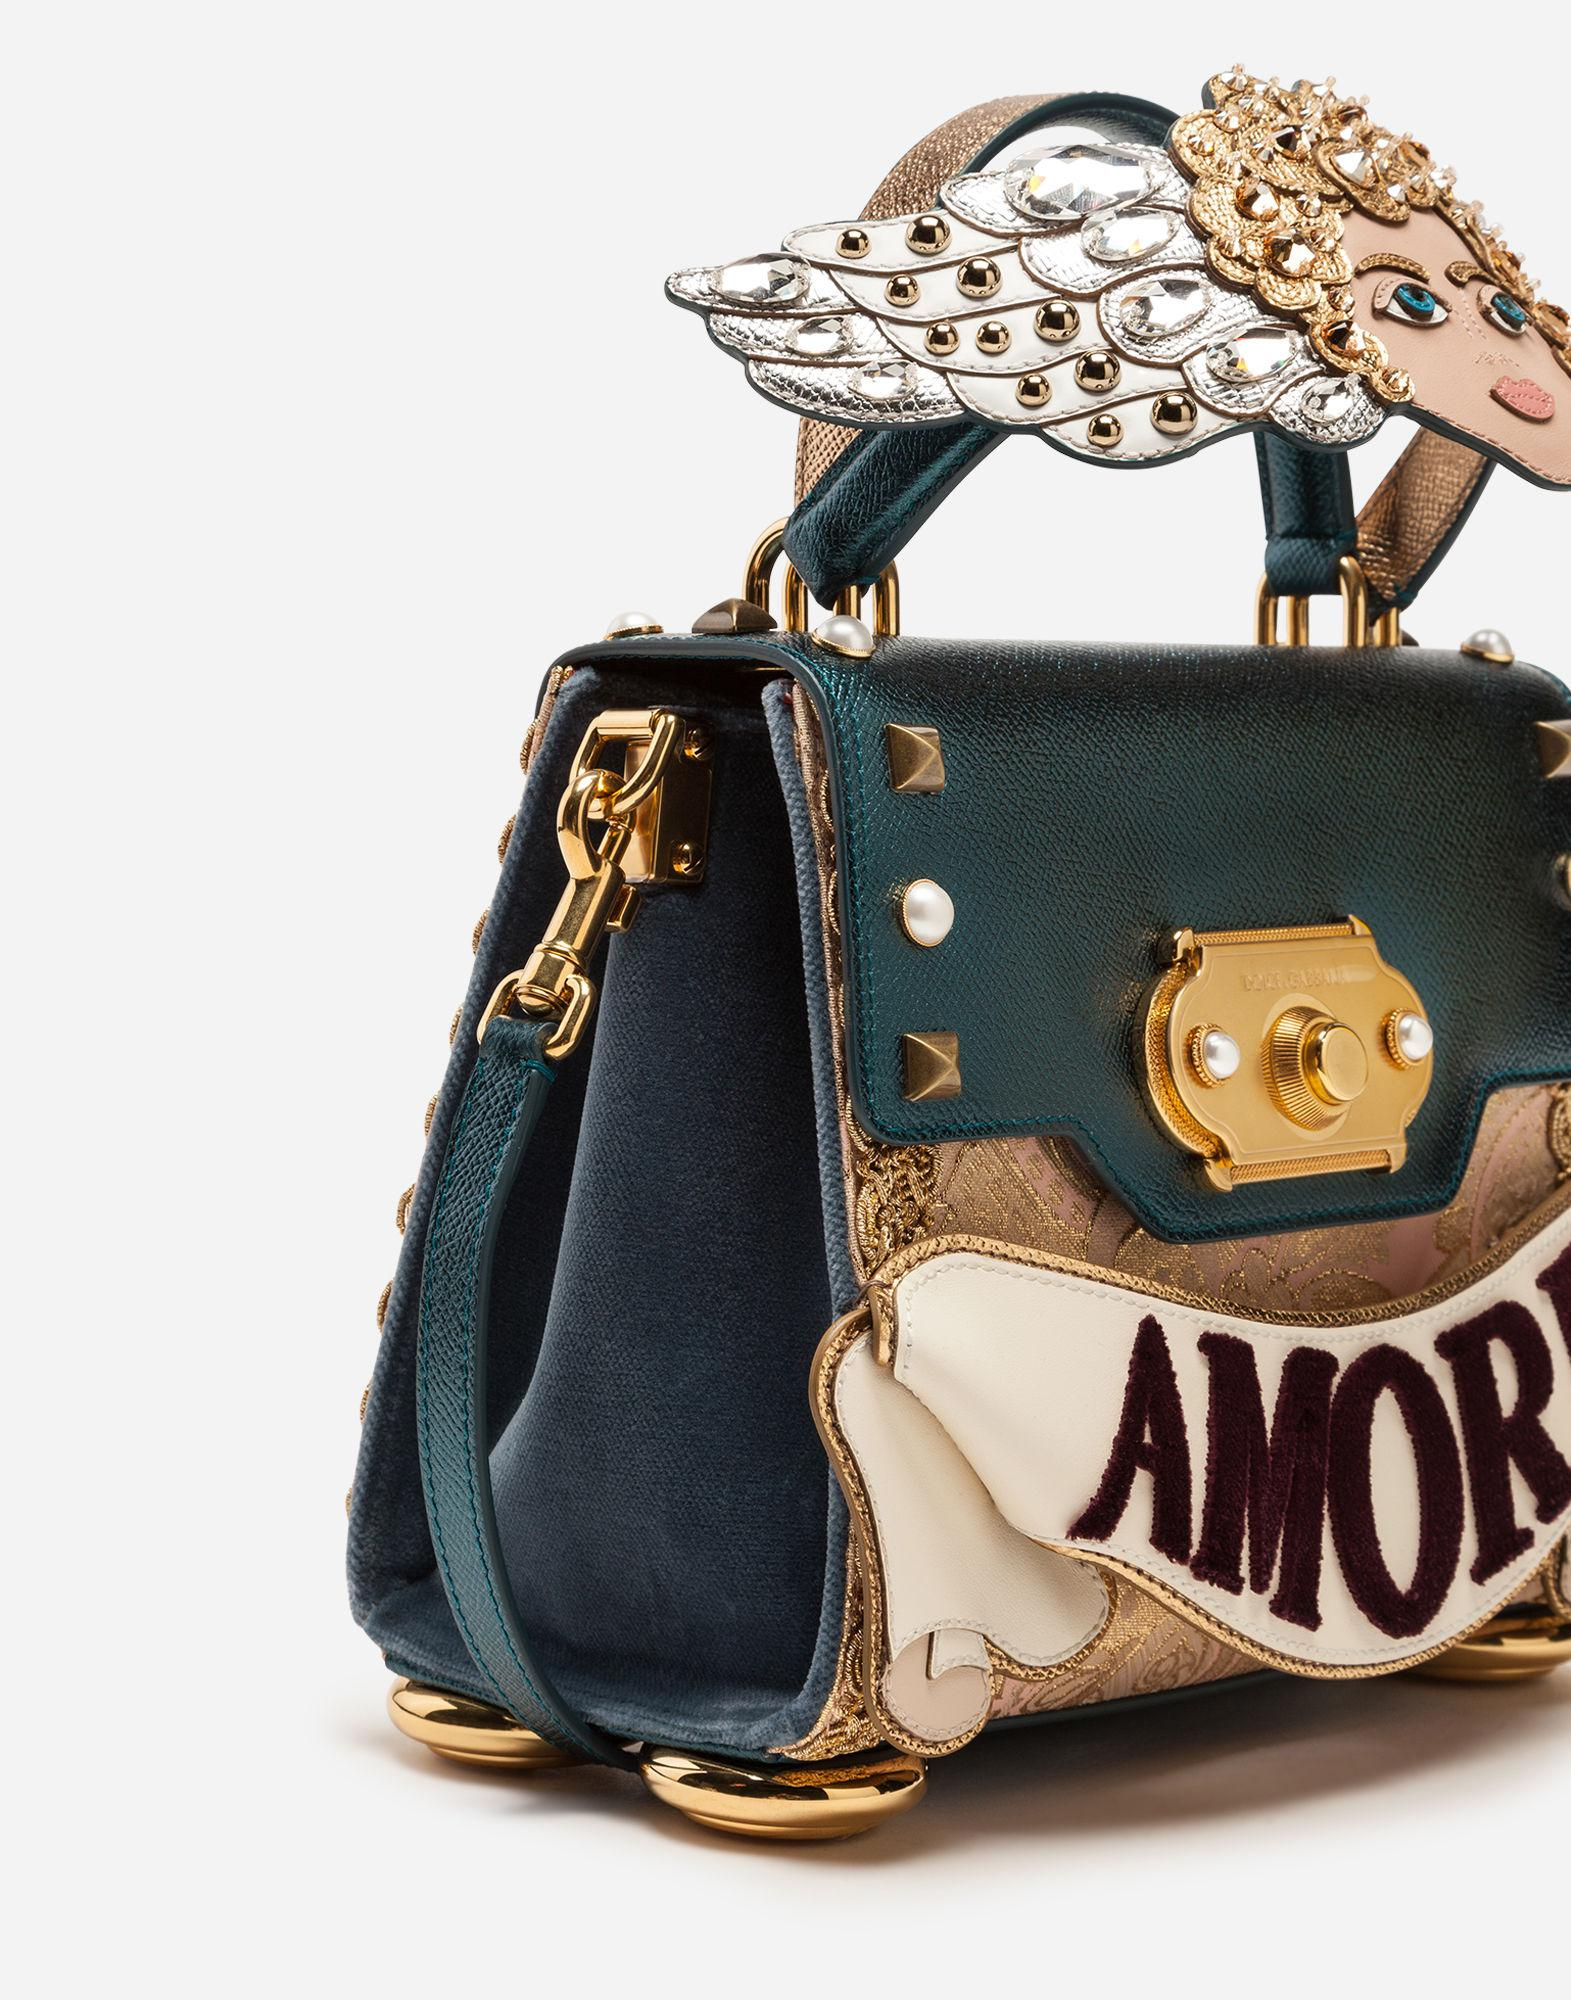 Lyst Dolce Gabbana Medium Welcome Handbag In A Mix Of Materials With Patch And Embroideries